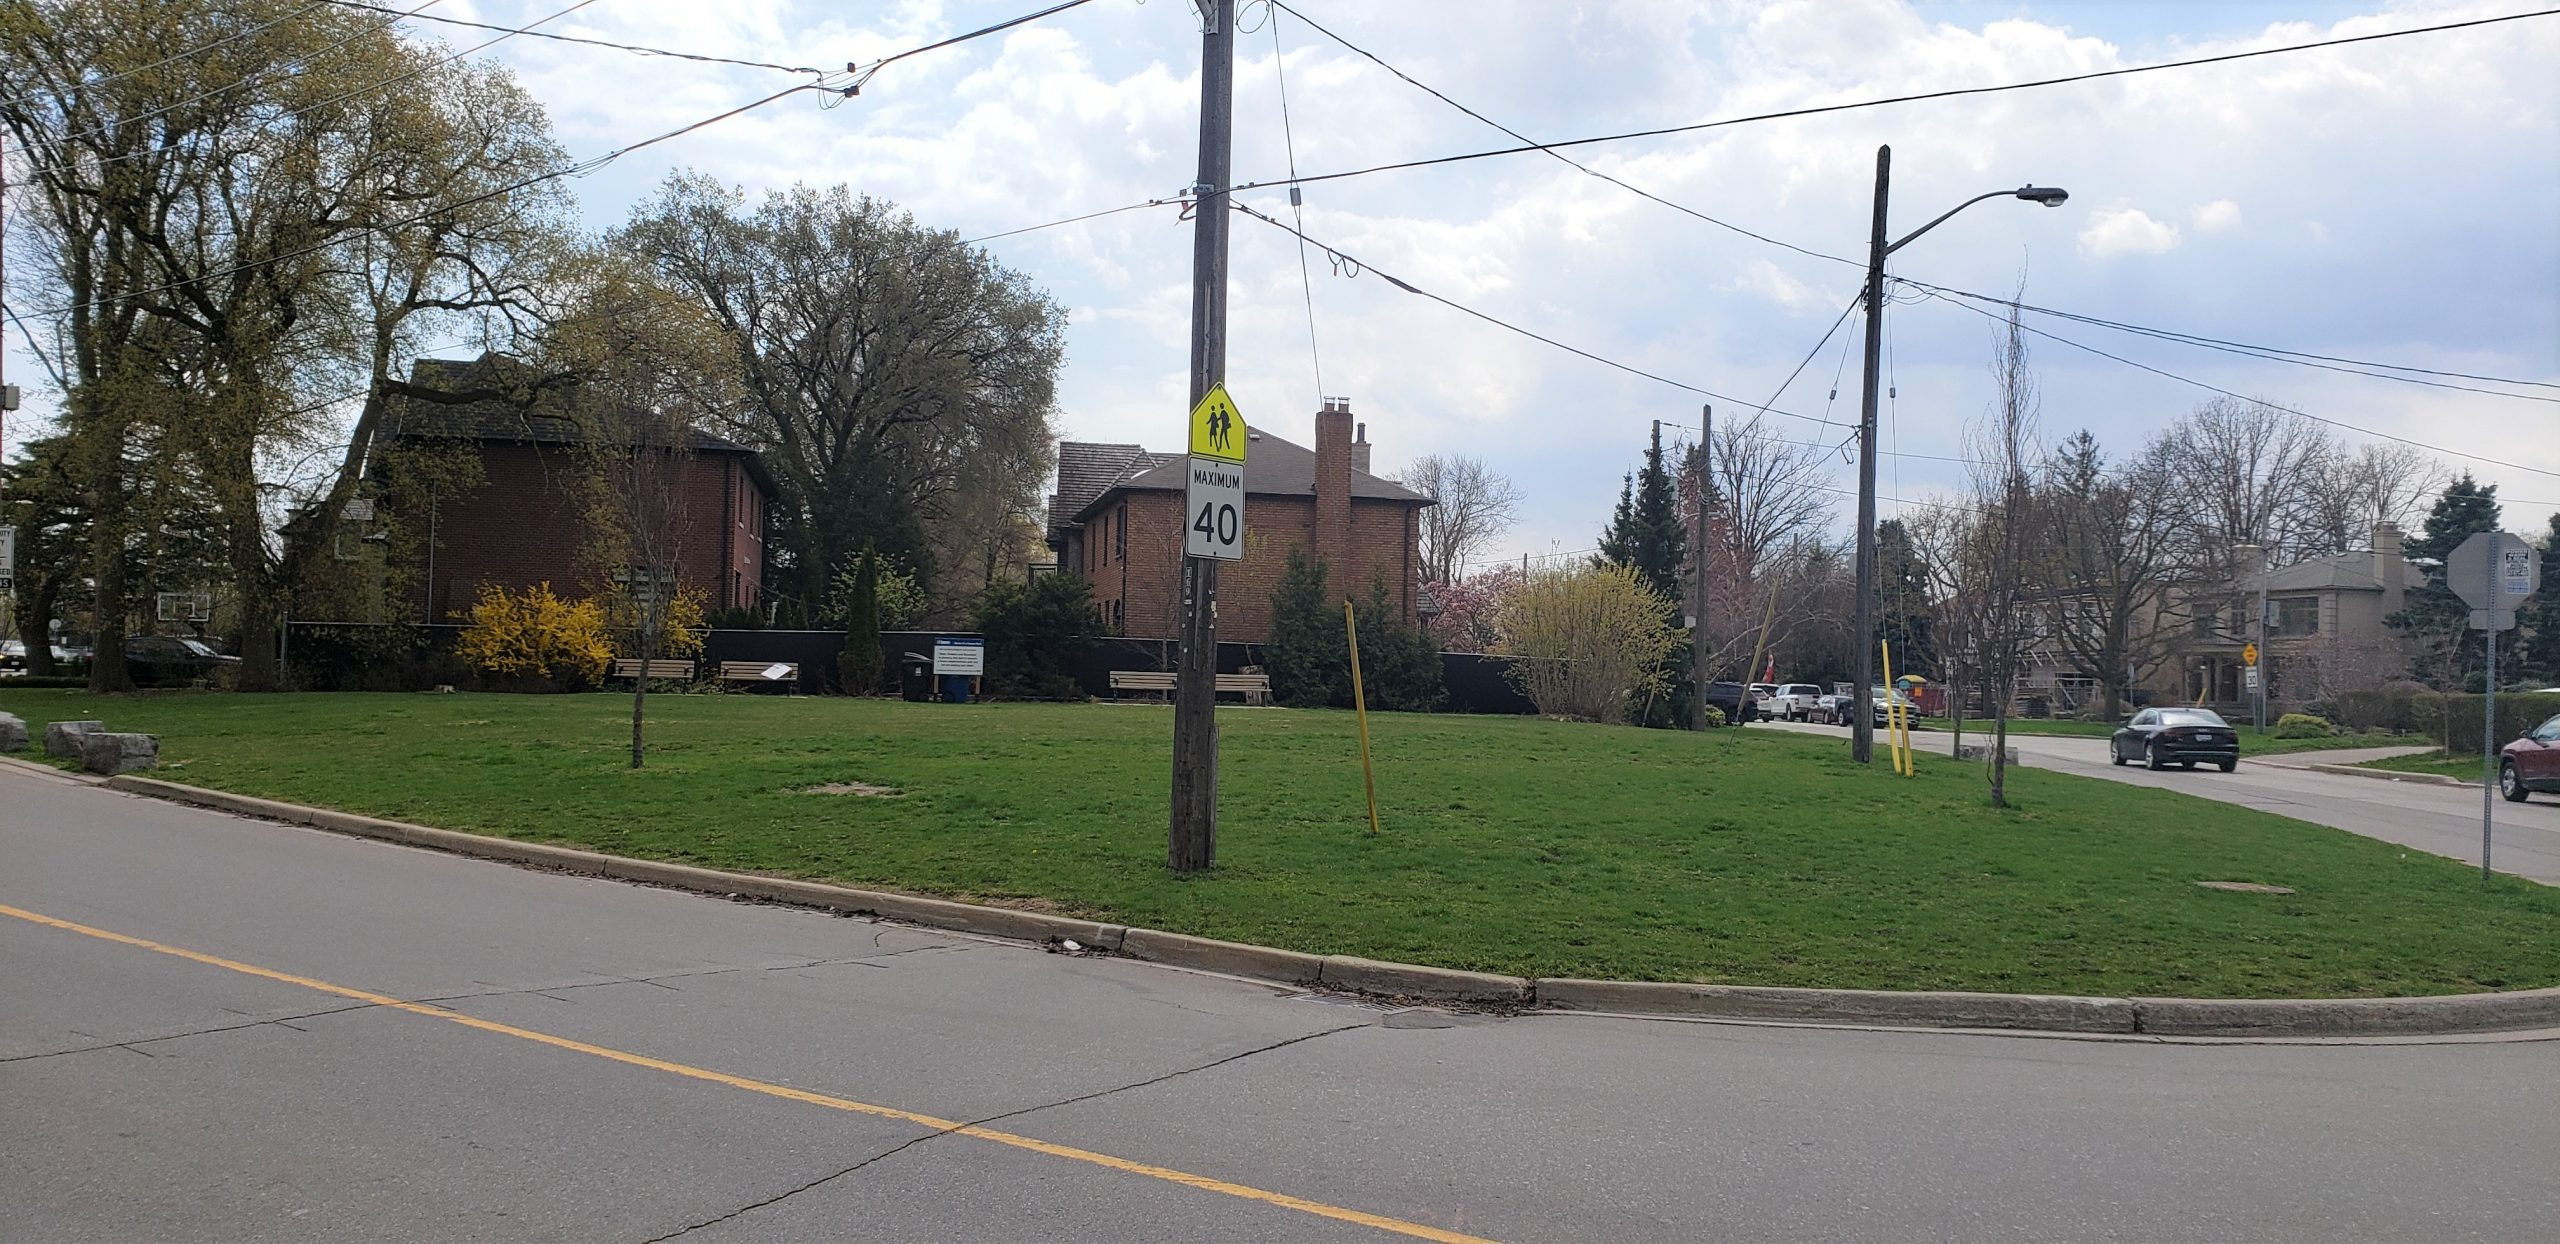 An image of the location for the new parkette taken in the early spring. The site is currently an open lawn area with four benches, light and traffic sign posts and is oval in shape bordered by a concrete edge and surrounded by a residential road and homes.